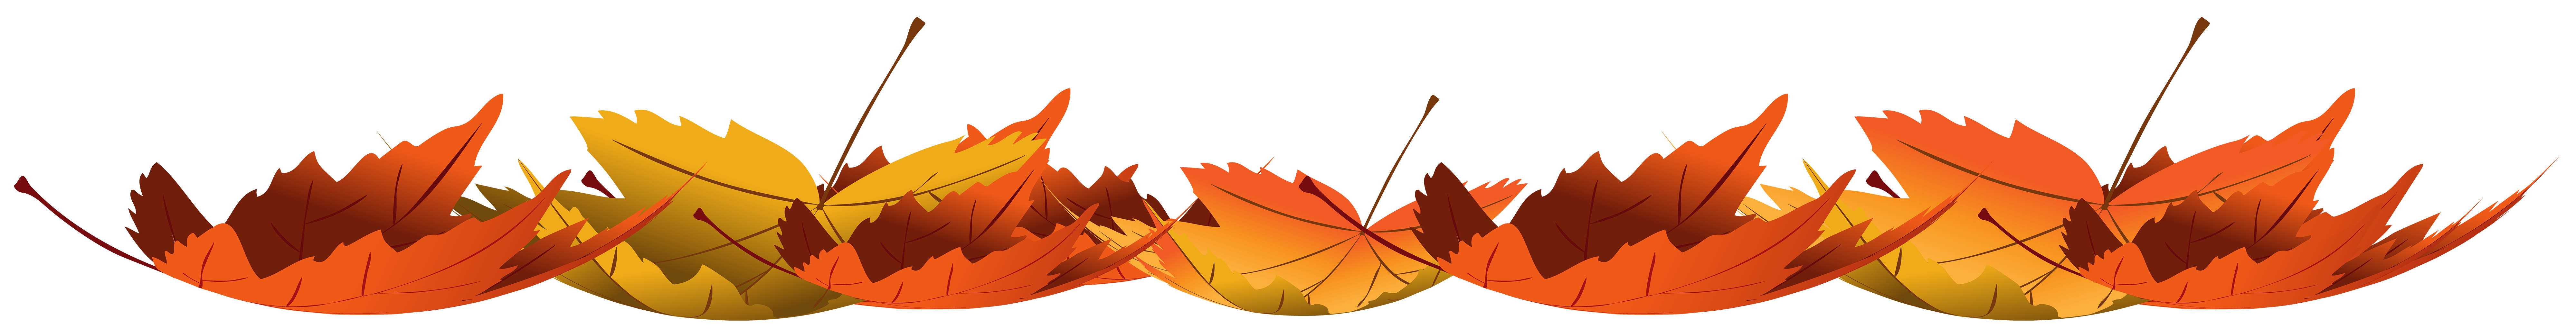 image stock Autumn leaves clipart transparent background. Fallen png image gallery